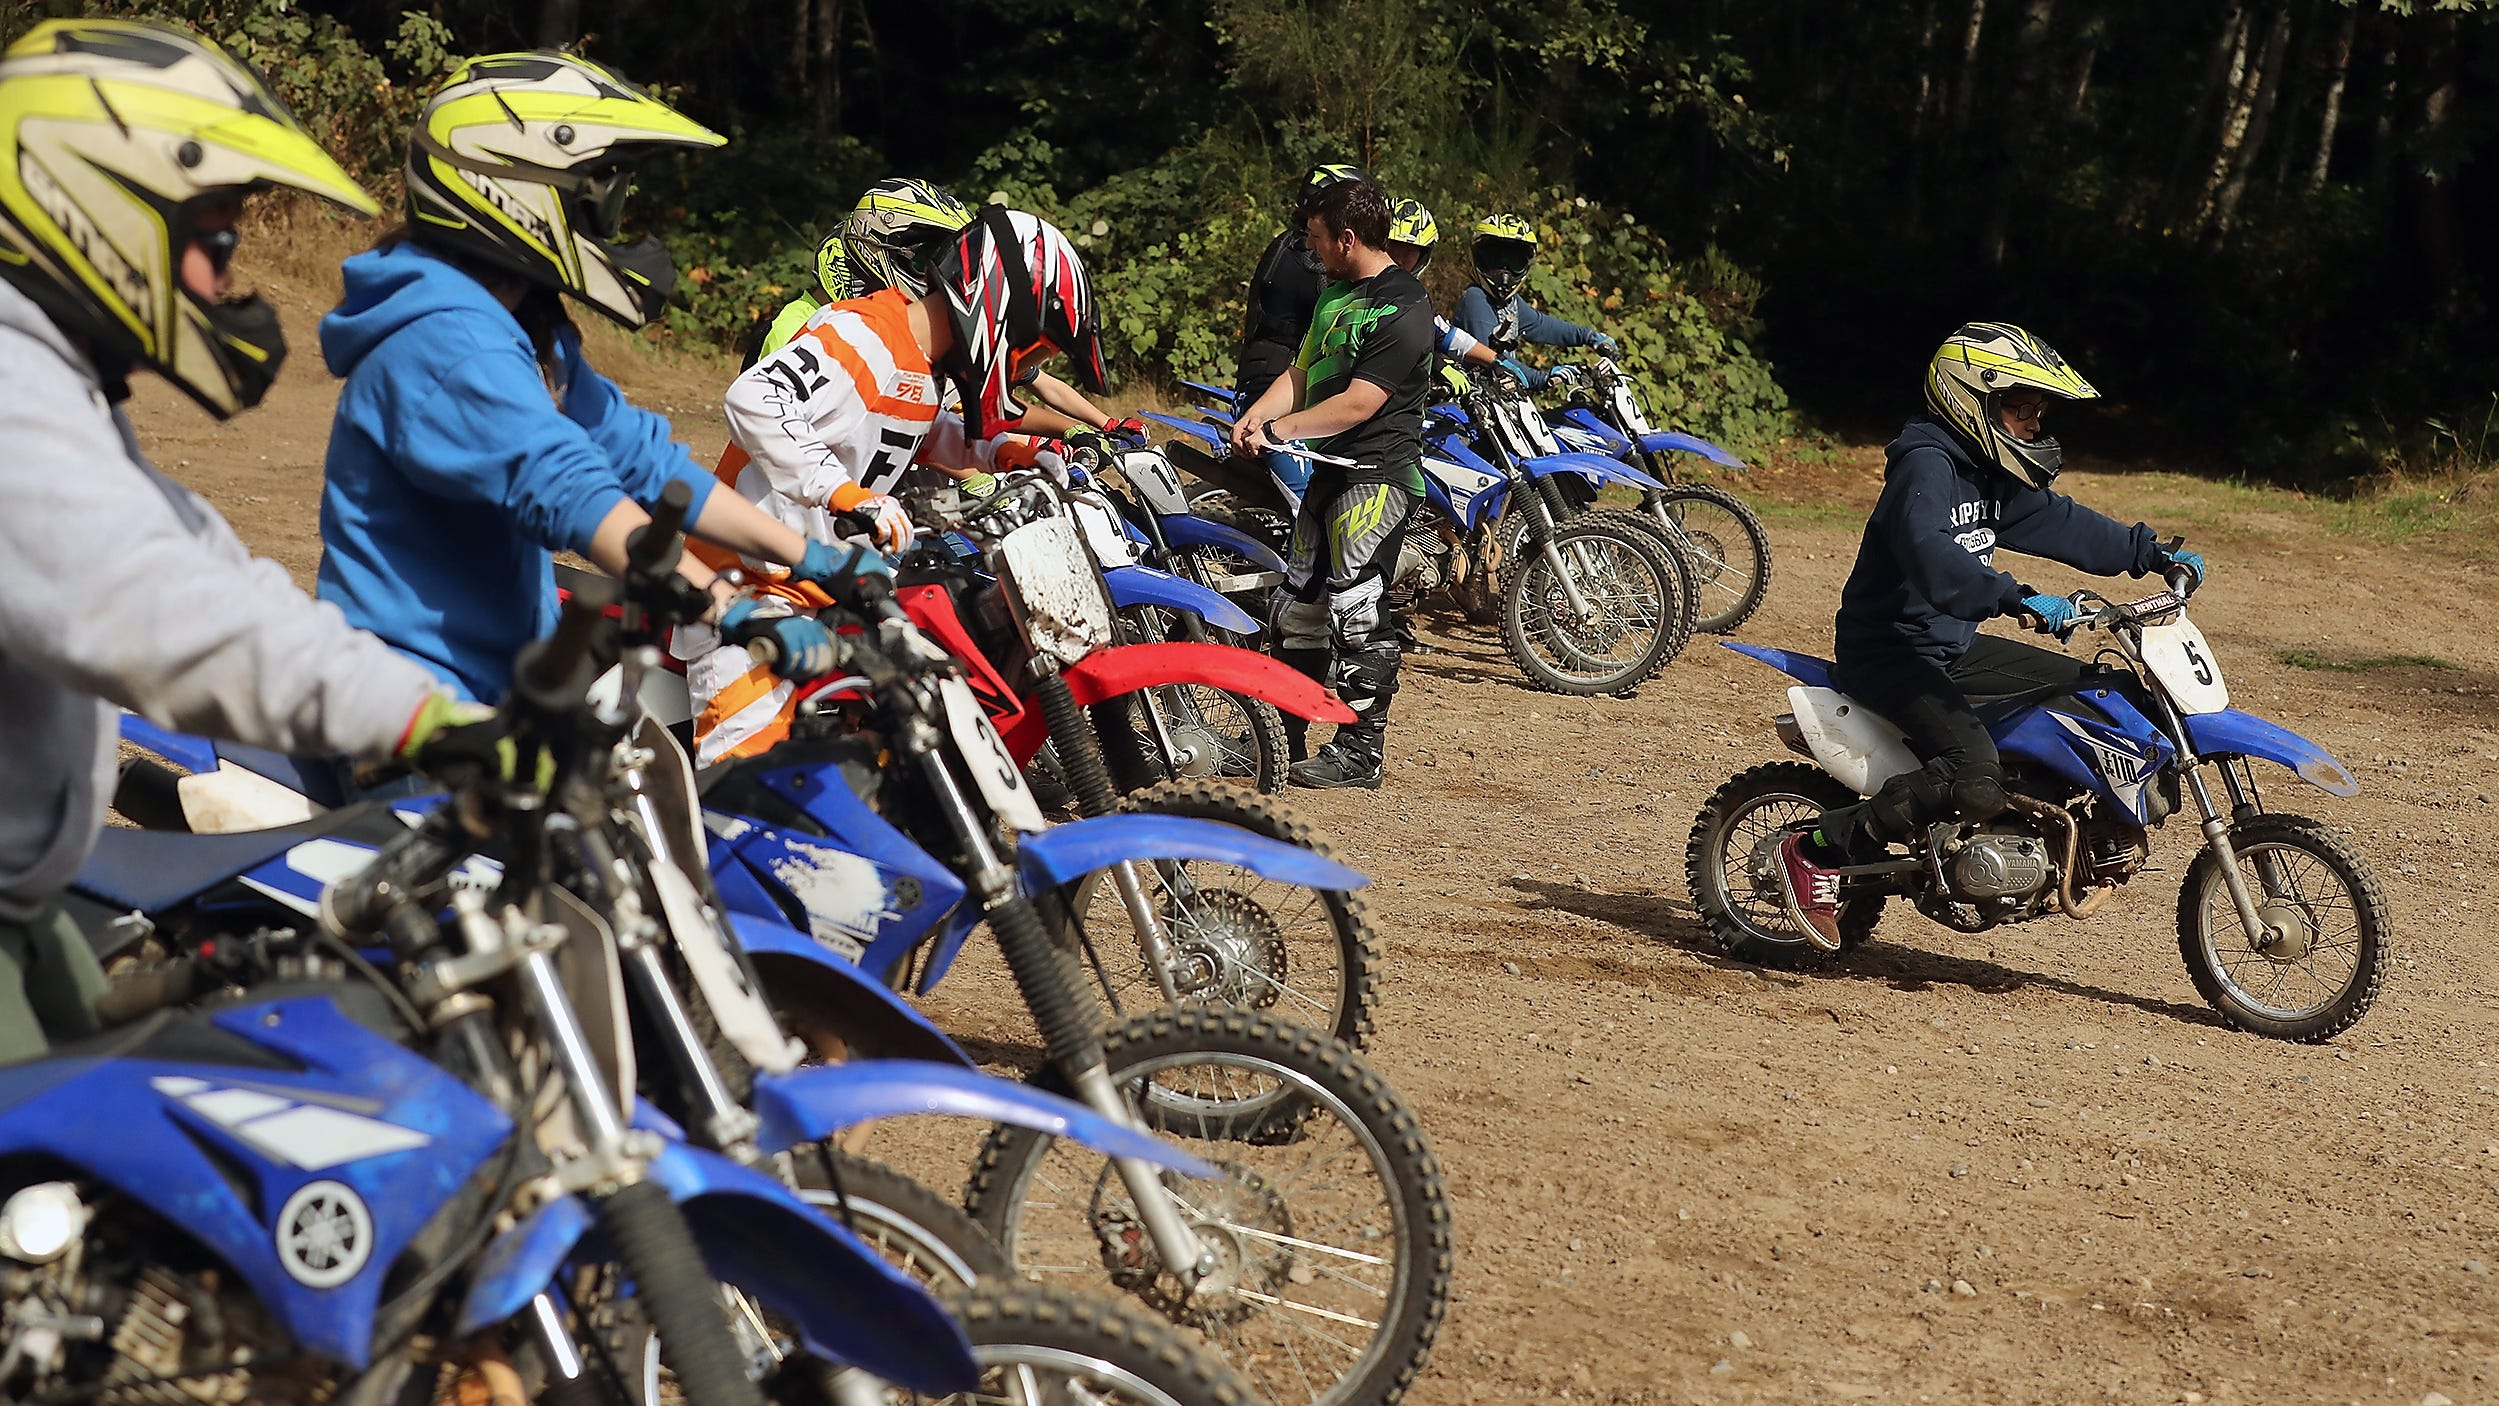 Luke Burrier, 14, (front) takes off from the line of bikes and heads out on the Moto-X course at Island Lake Camp on Saturday, September 22, 2018.